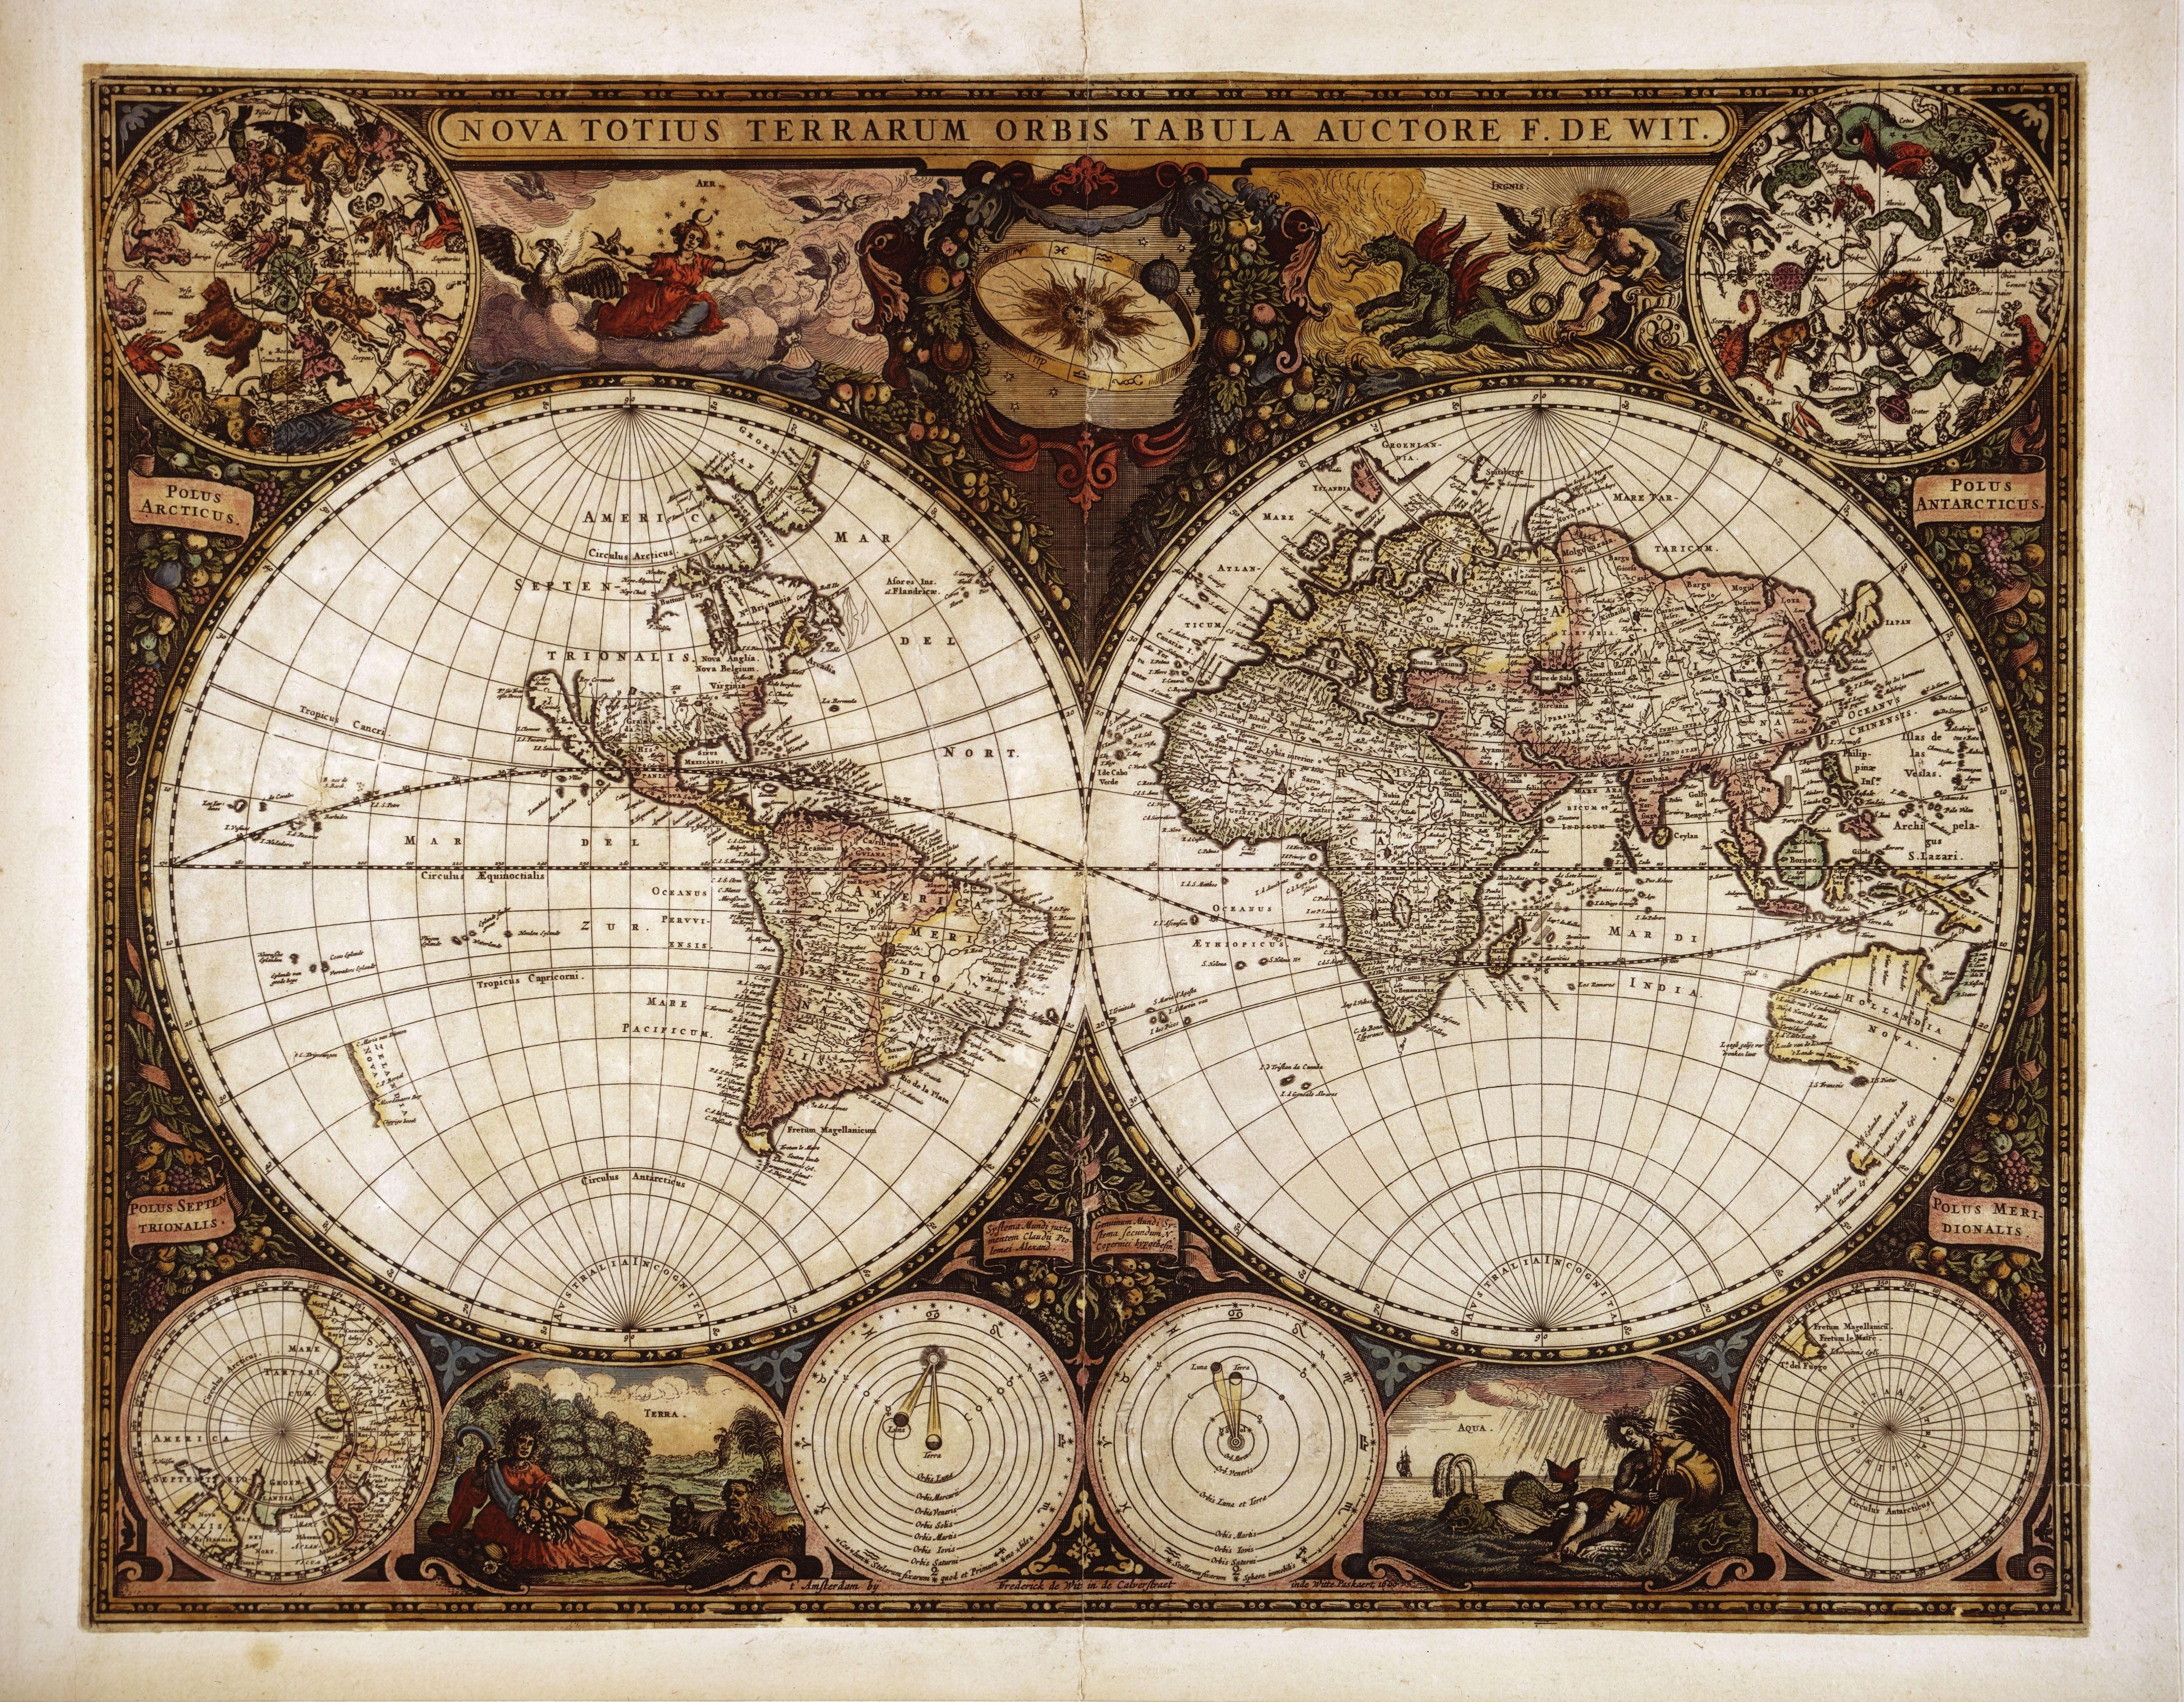 The glory of the old history pinterest maps maps maps antique monde wit antique world maps old world map illustration digital image ancient maps 02 gumiabroncs Images